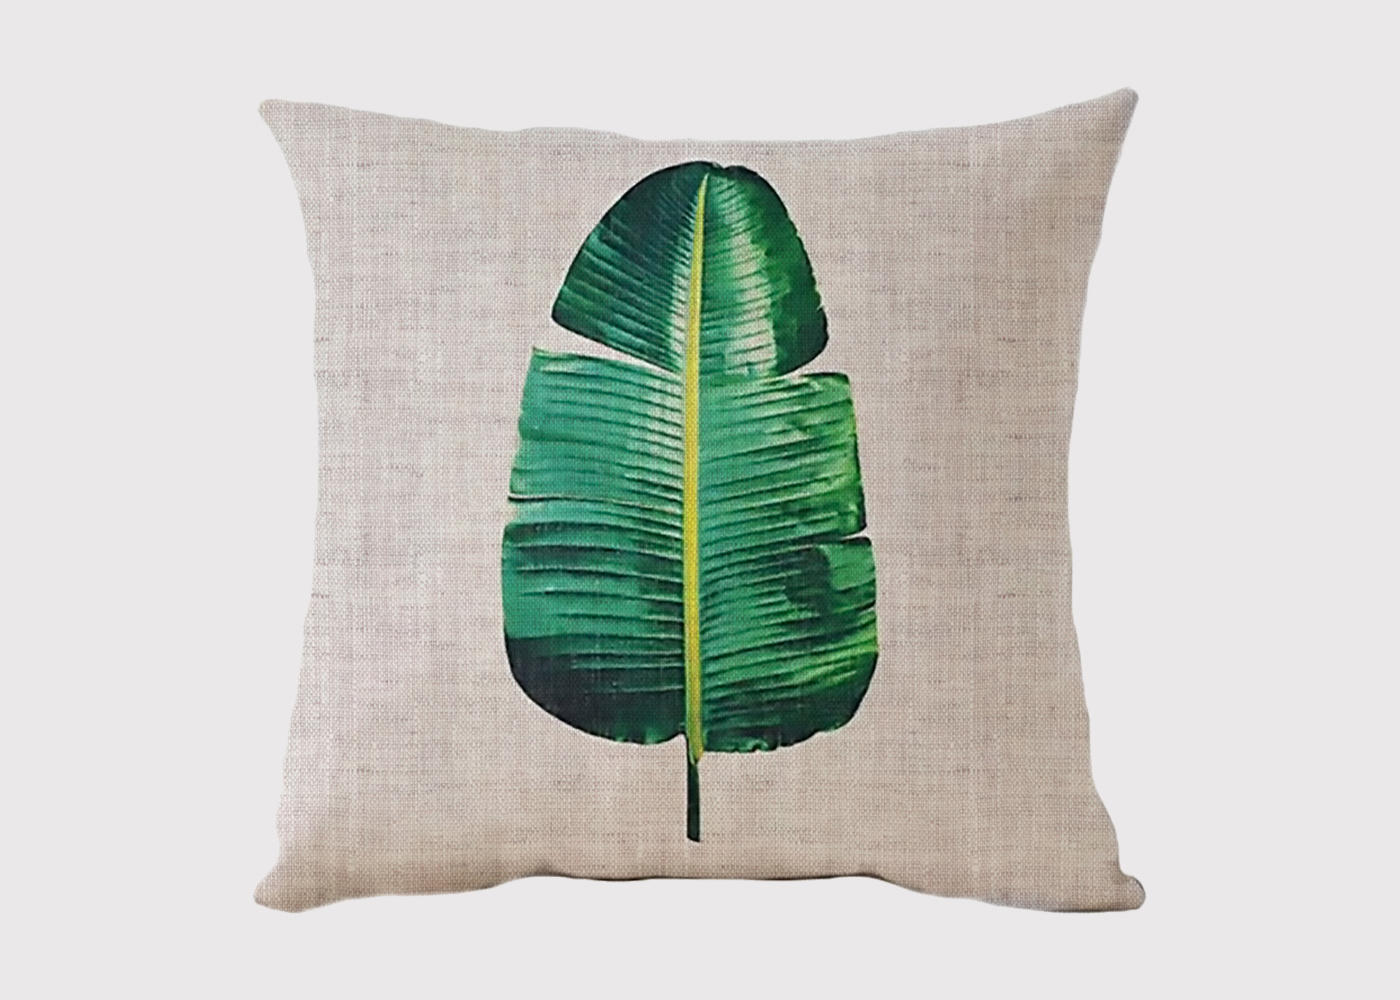 Vivid Leaf Cushion